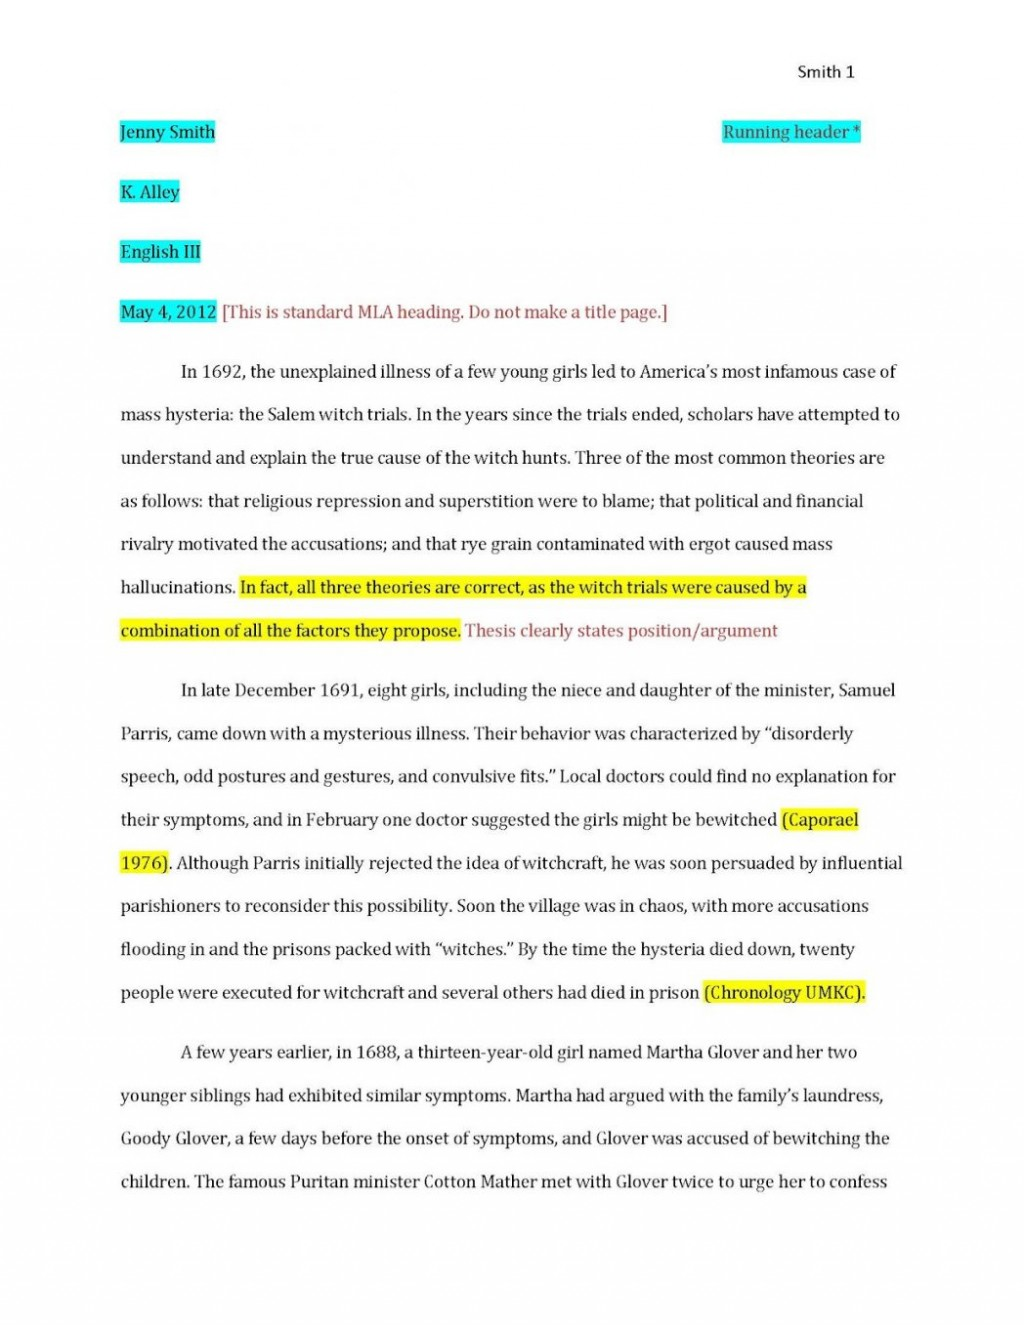 002 Mla Format Essay Generator Author Date References System Ready Set Automaticpaper P 1048x1357 Wondrous Bot Online Free Reviews Large